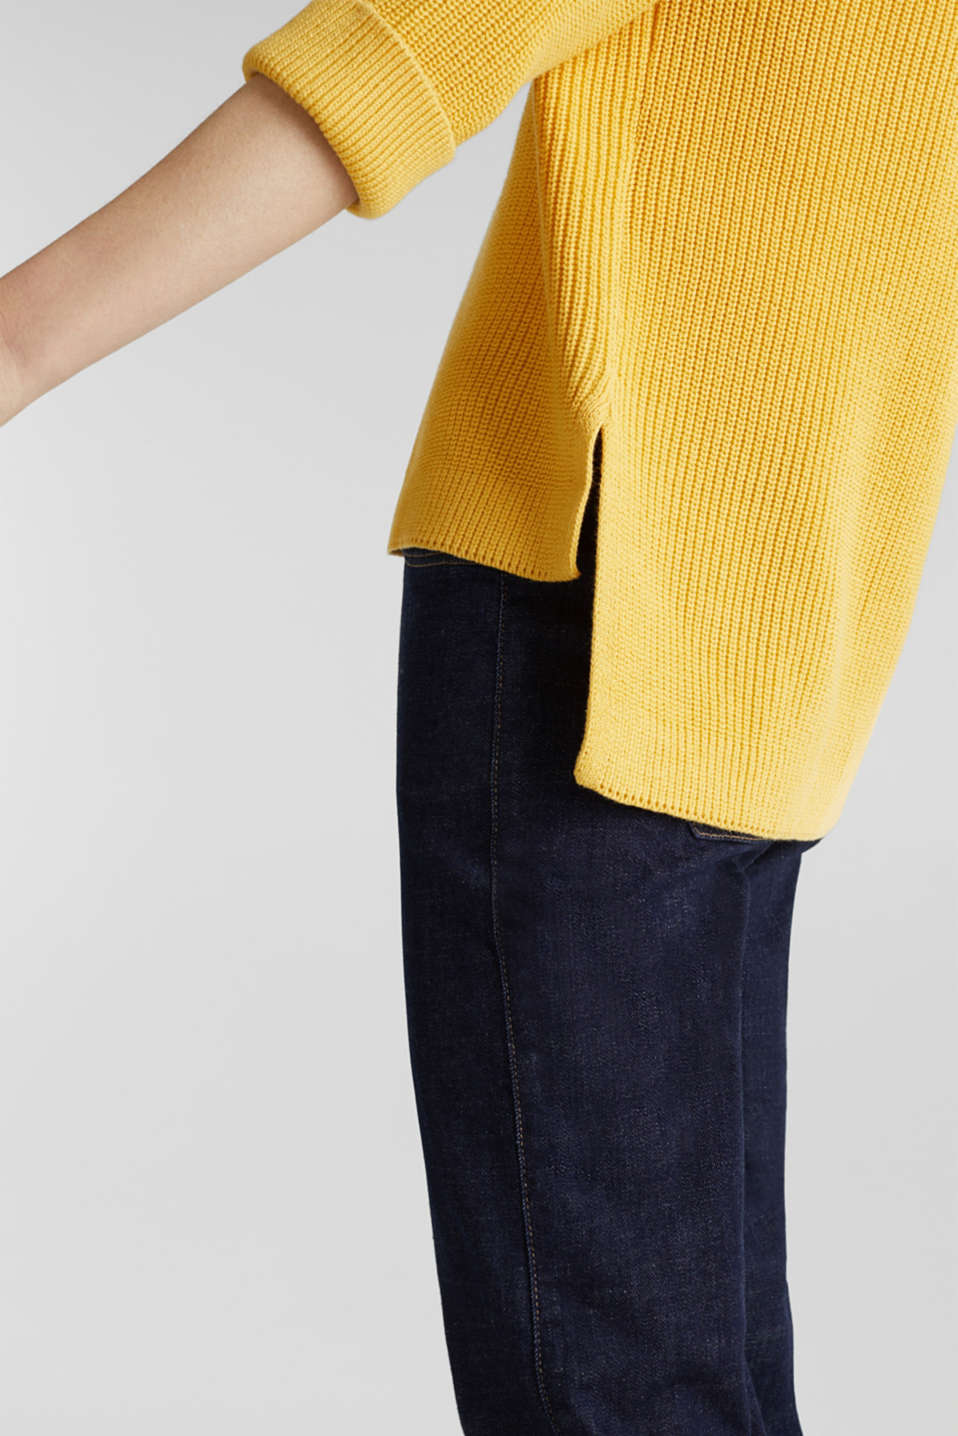 Jumper with a high-low hem, 100% cotton, YELLOW, detail image number 2